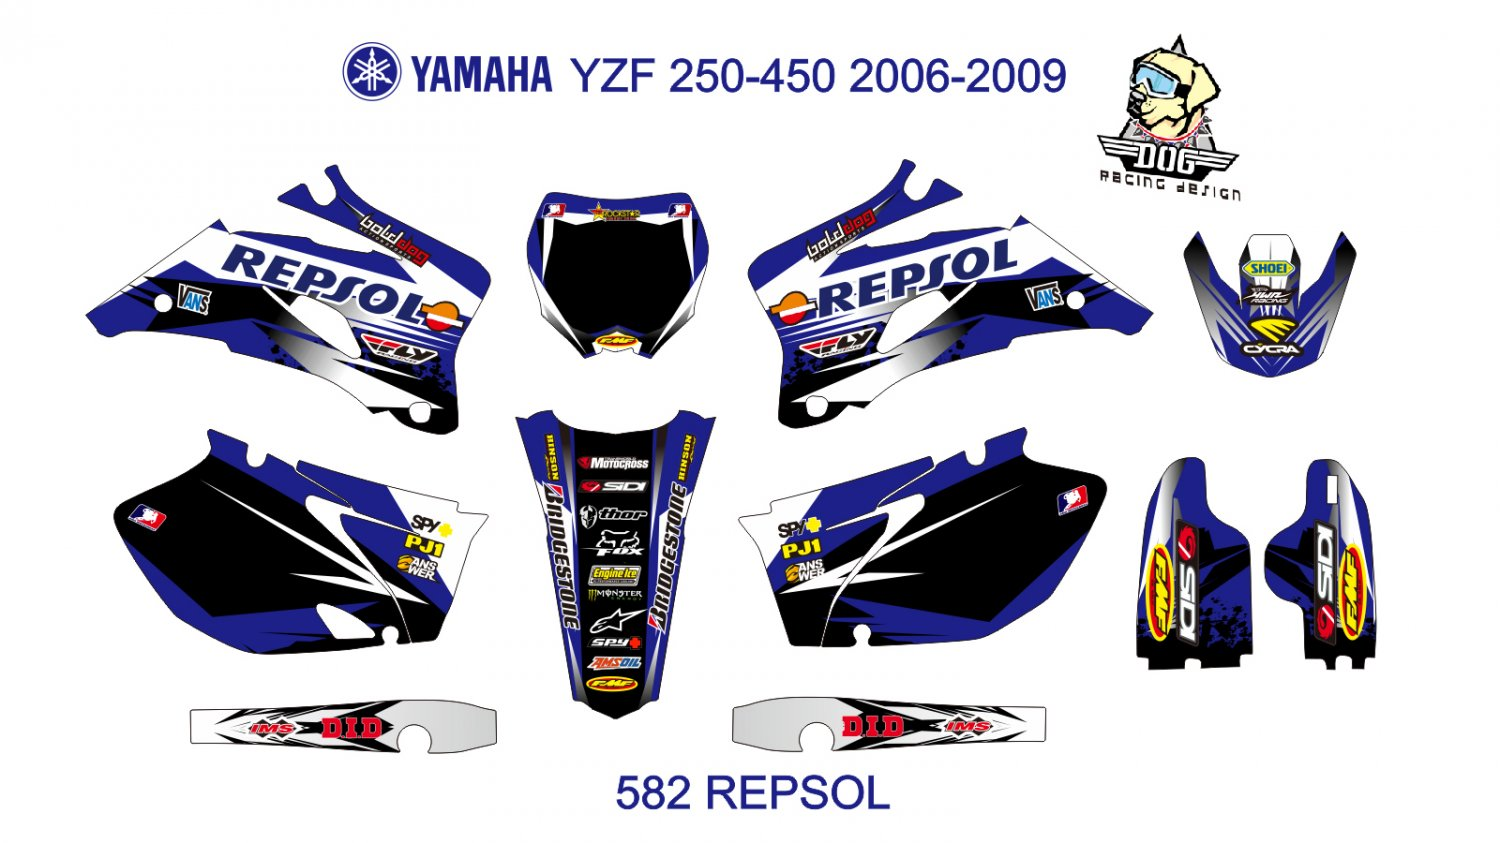 YAMAHA YZF 250-450 2006-2009 GRAPHIC DECAL KIT CODE.582